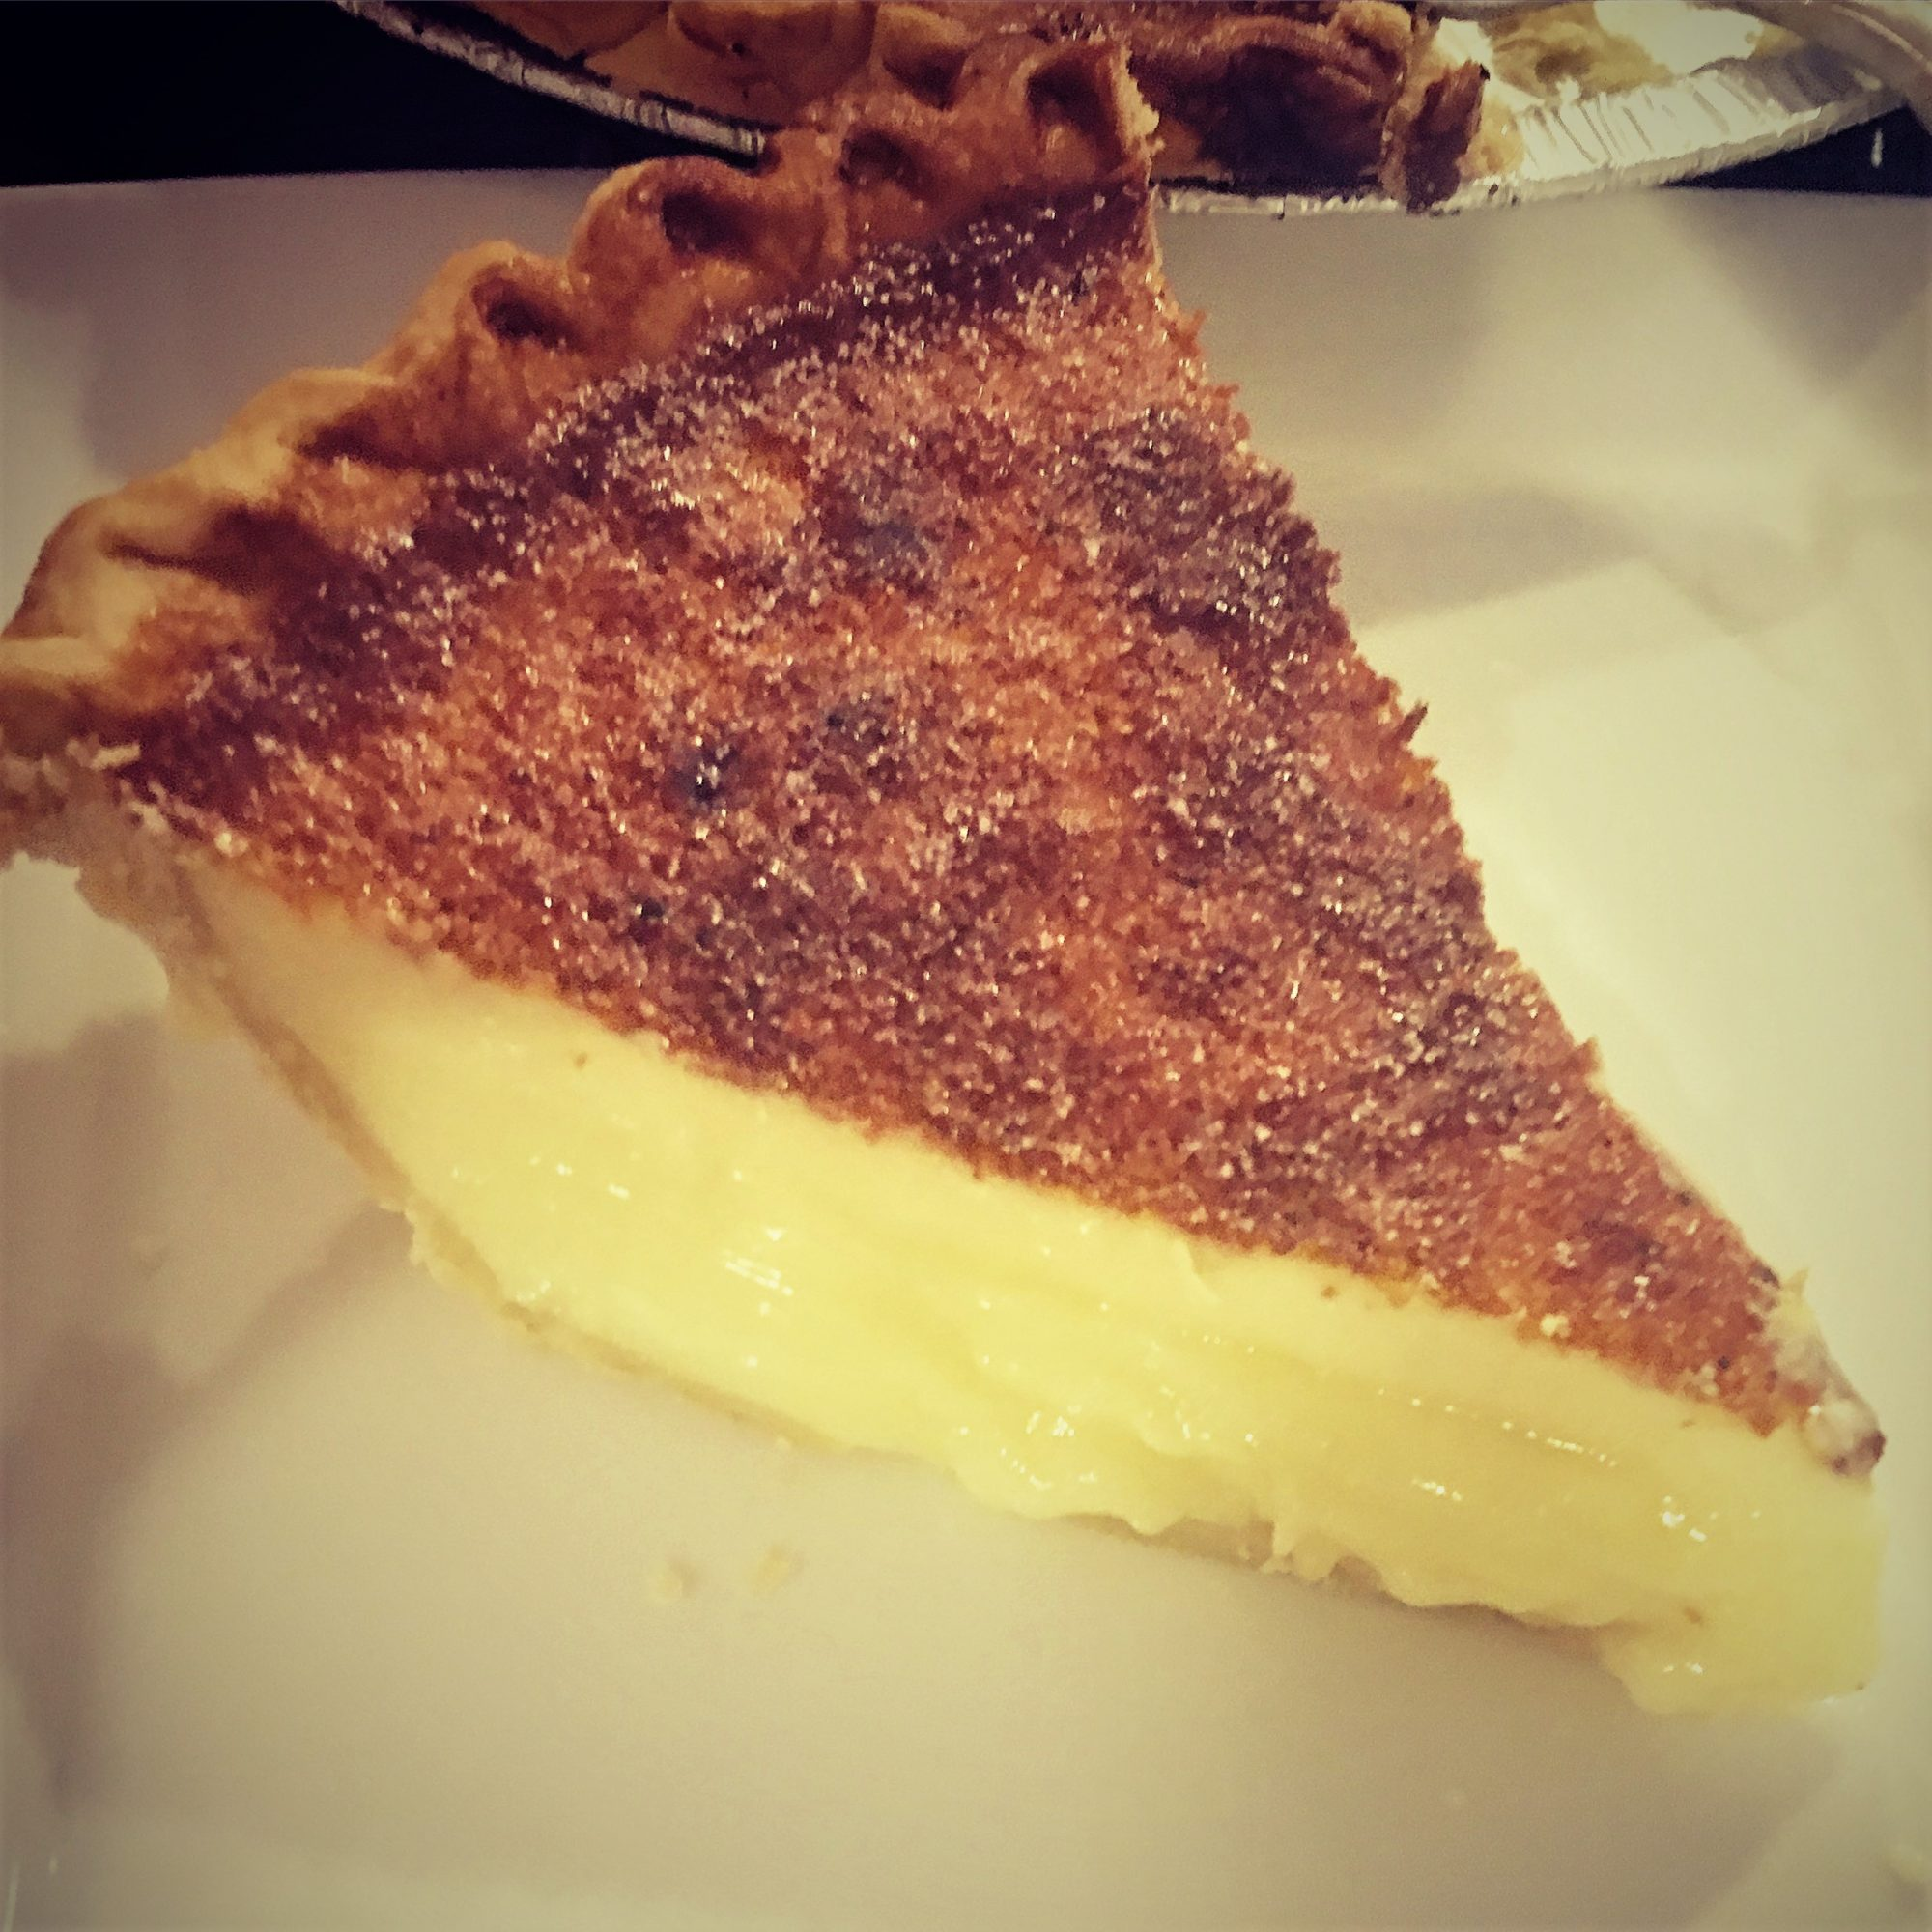 a slice of custard pie on a white plate